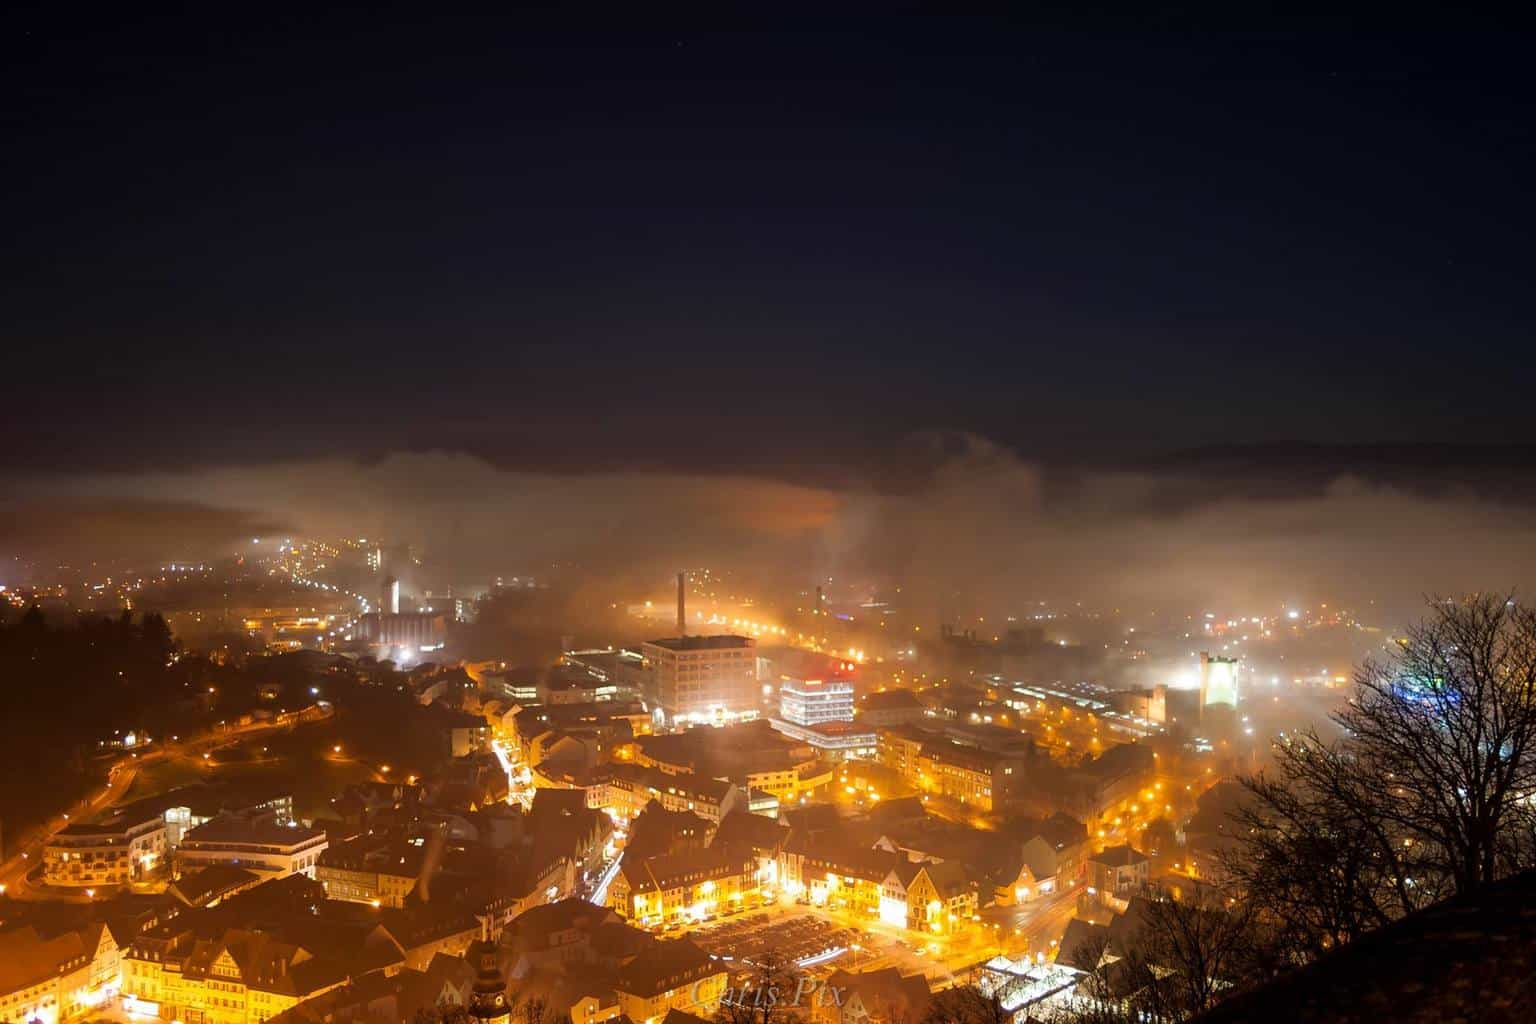 Fog is covering the city - Kulmbach/Germany